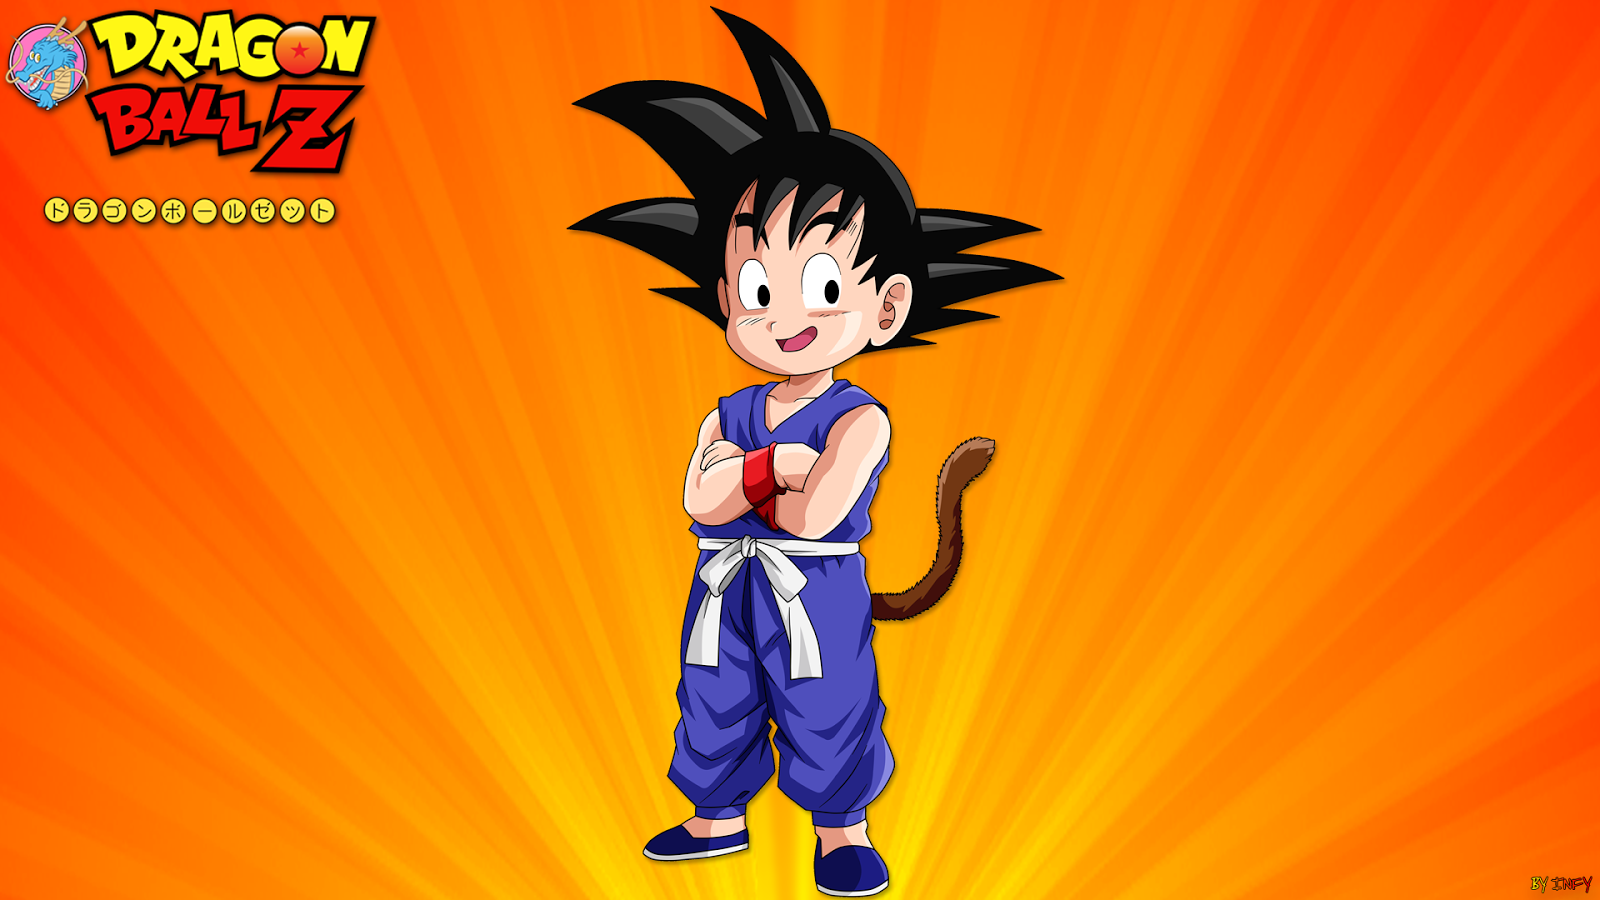 Cute Kid Wallpapers Free Download Download Dragon Ball Songoku Full Hd Wallpapers Hd